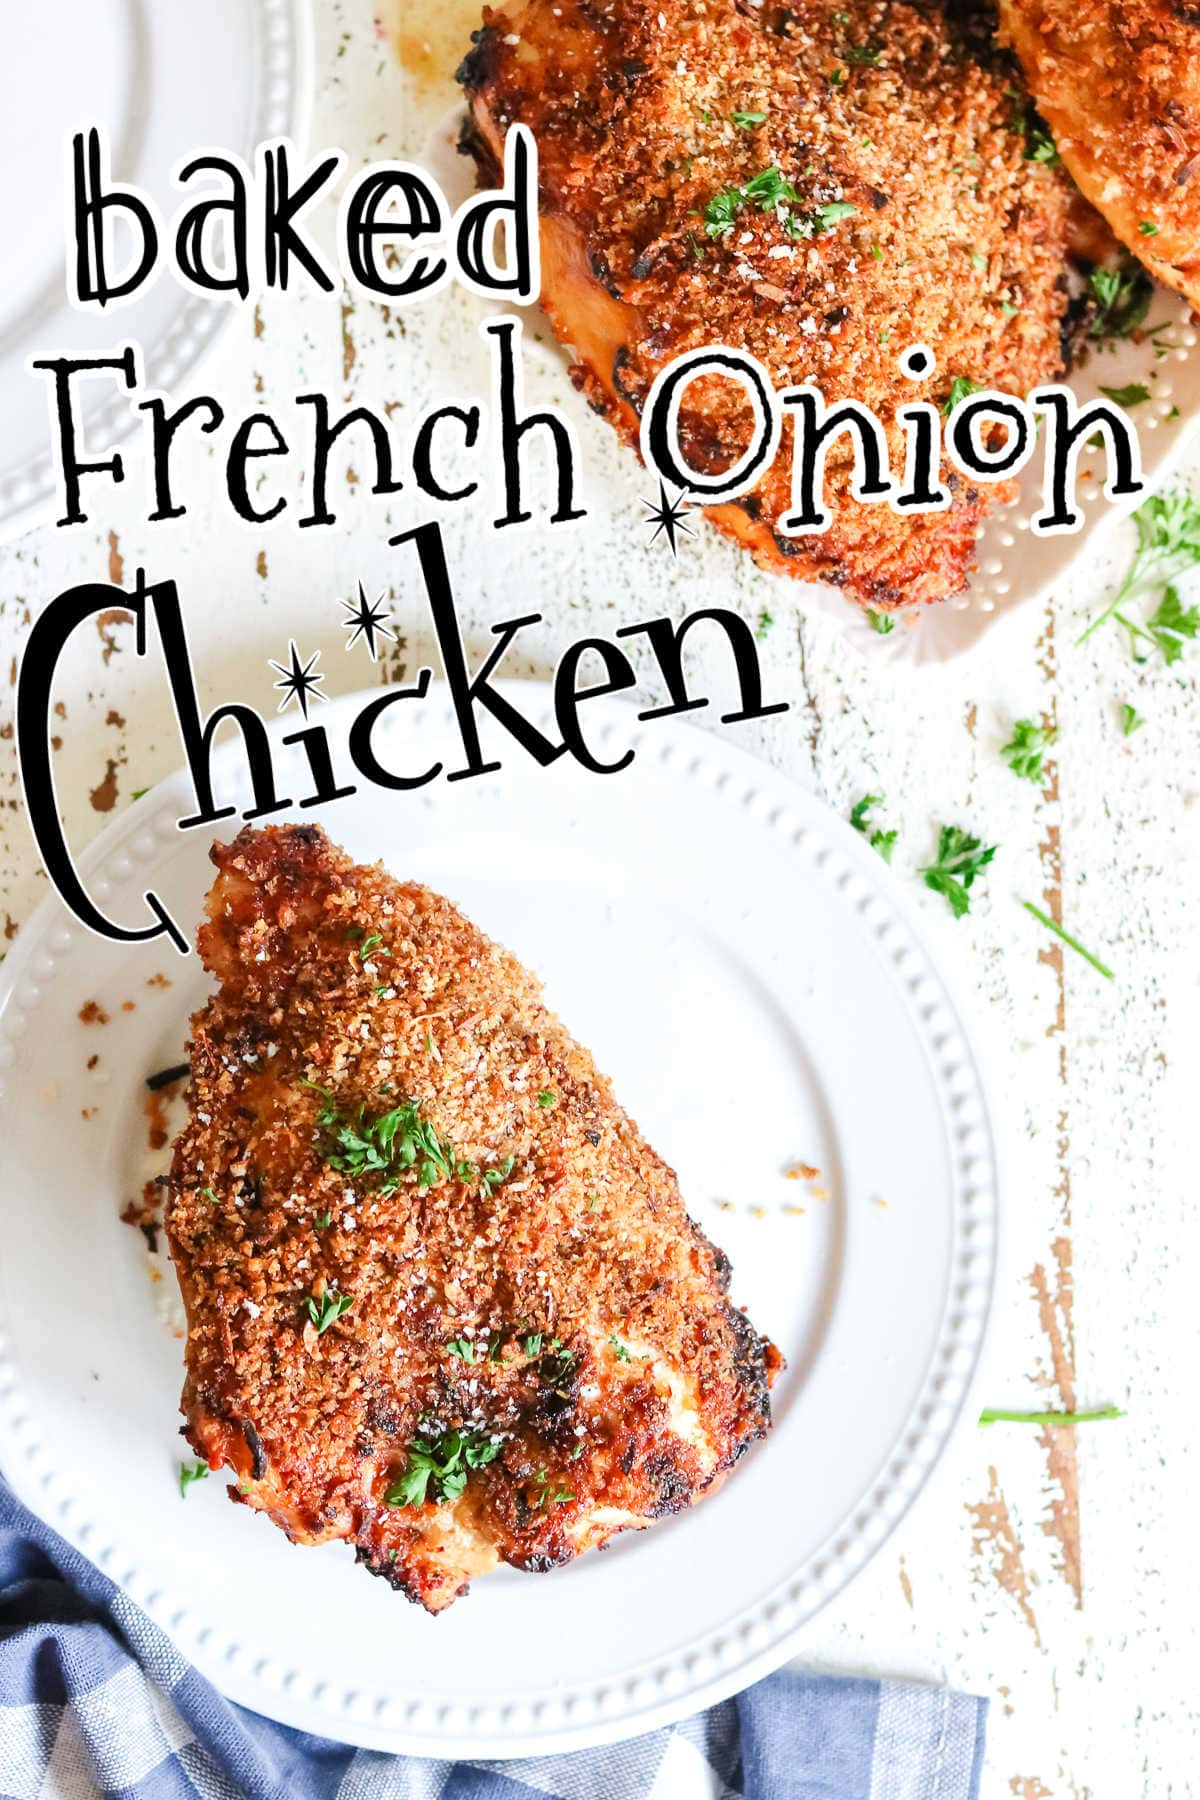 Baked French onion chicken on a white plate with title text overlay.